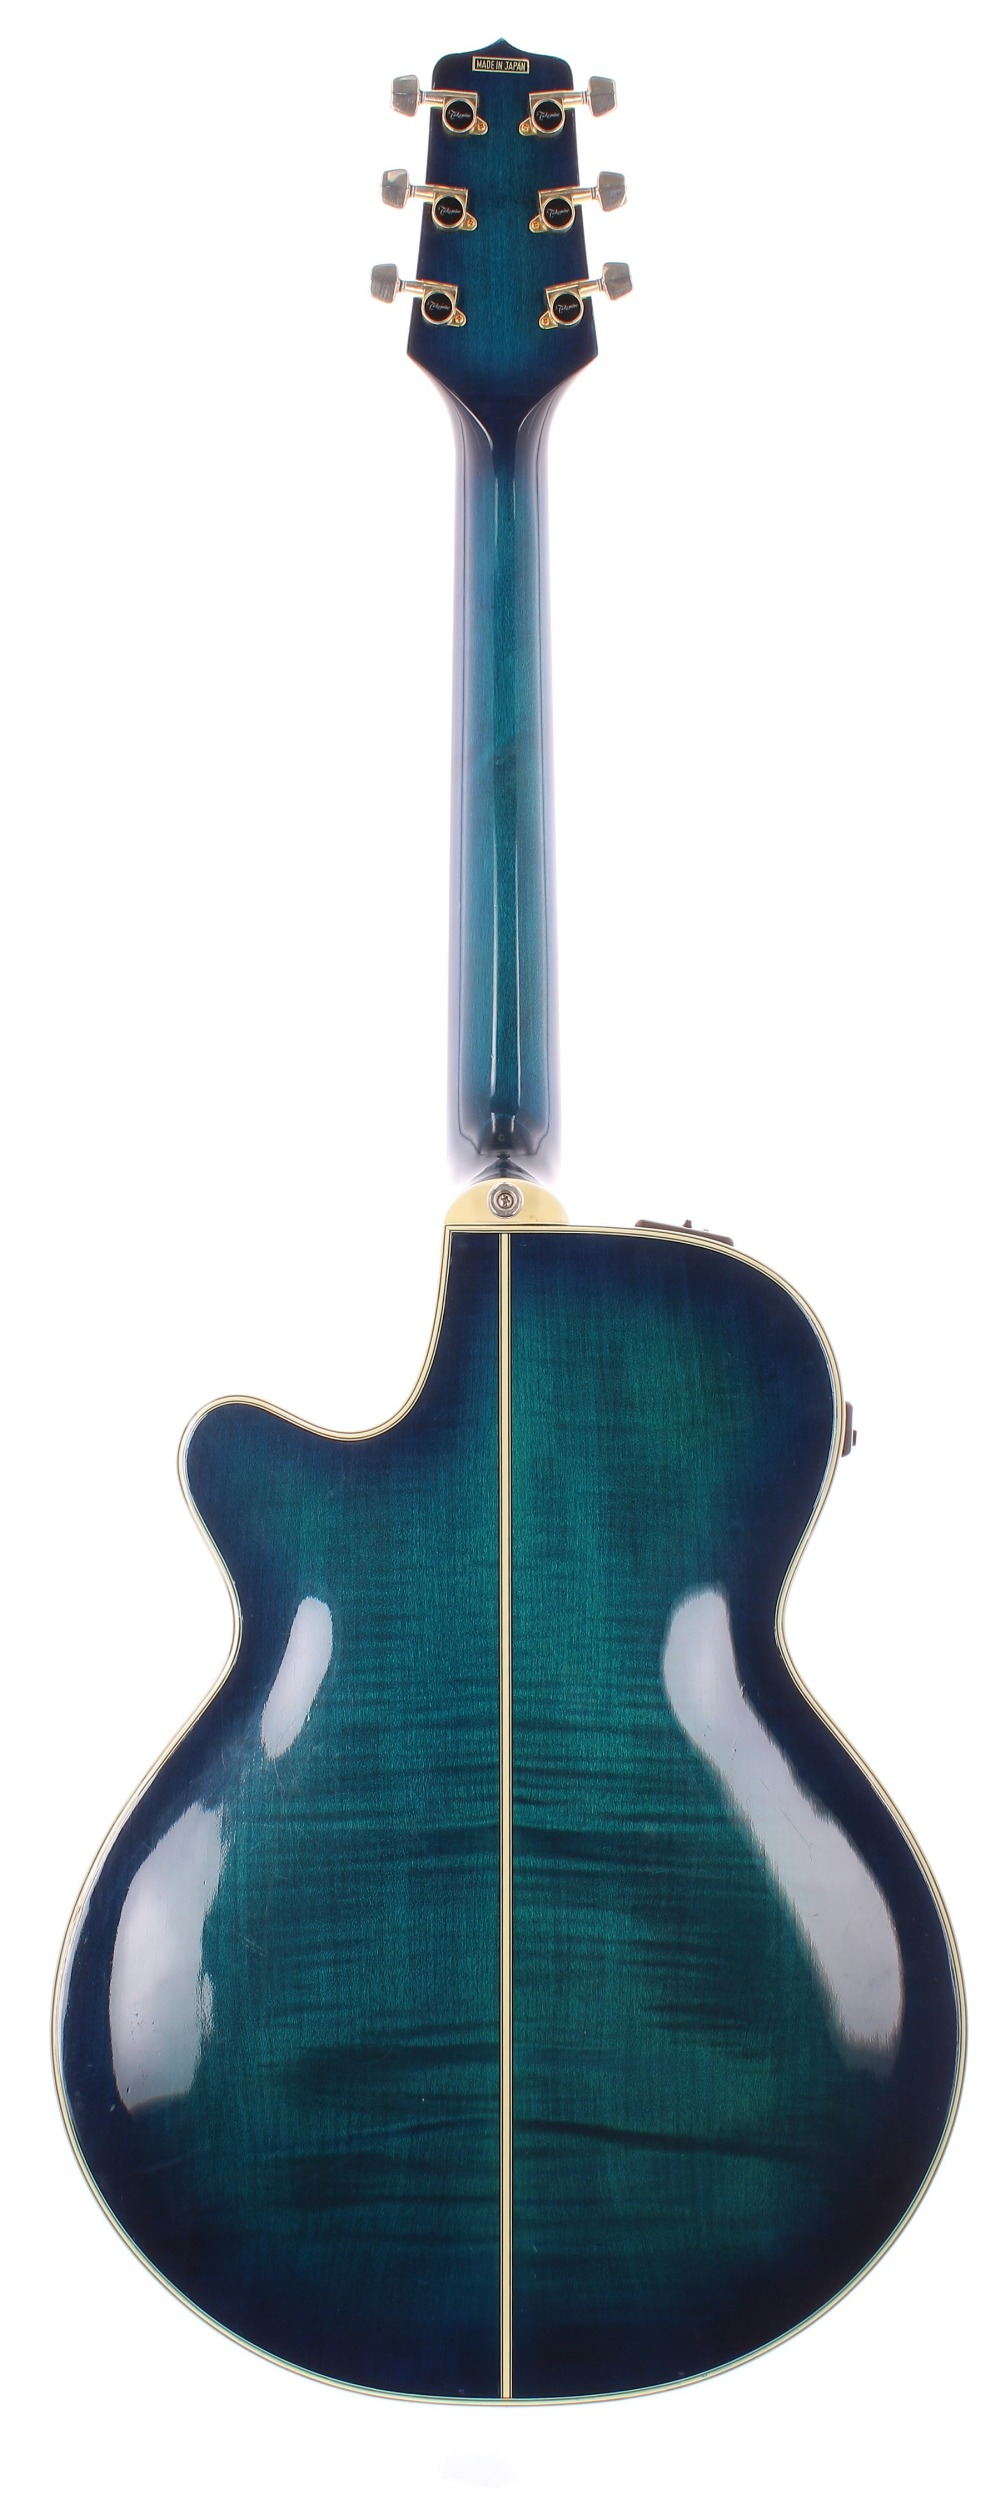 Takamine EF591 MB electro-acoustic guitar, made in Japan; Finish: blue burst, minor surface - Image 2 of 3